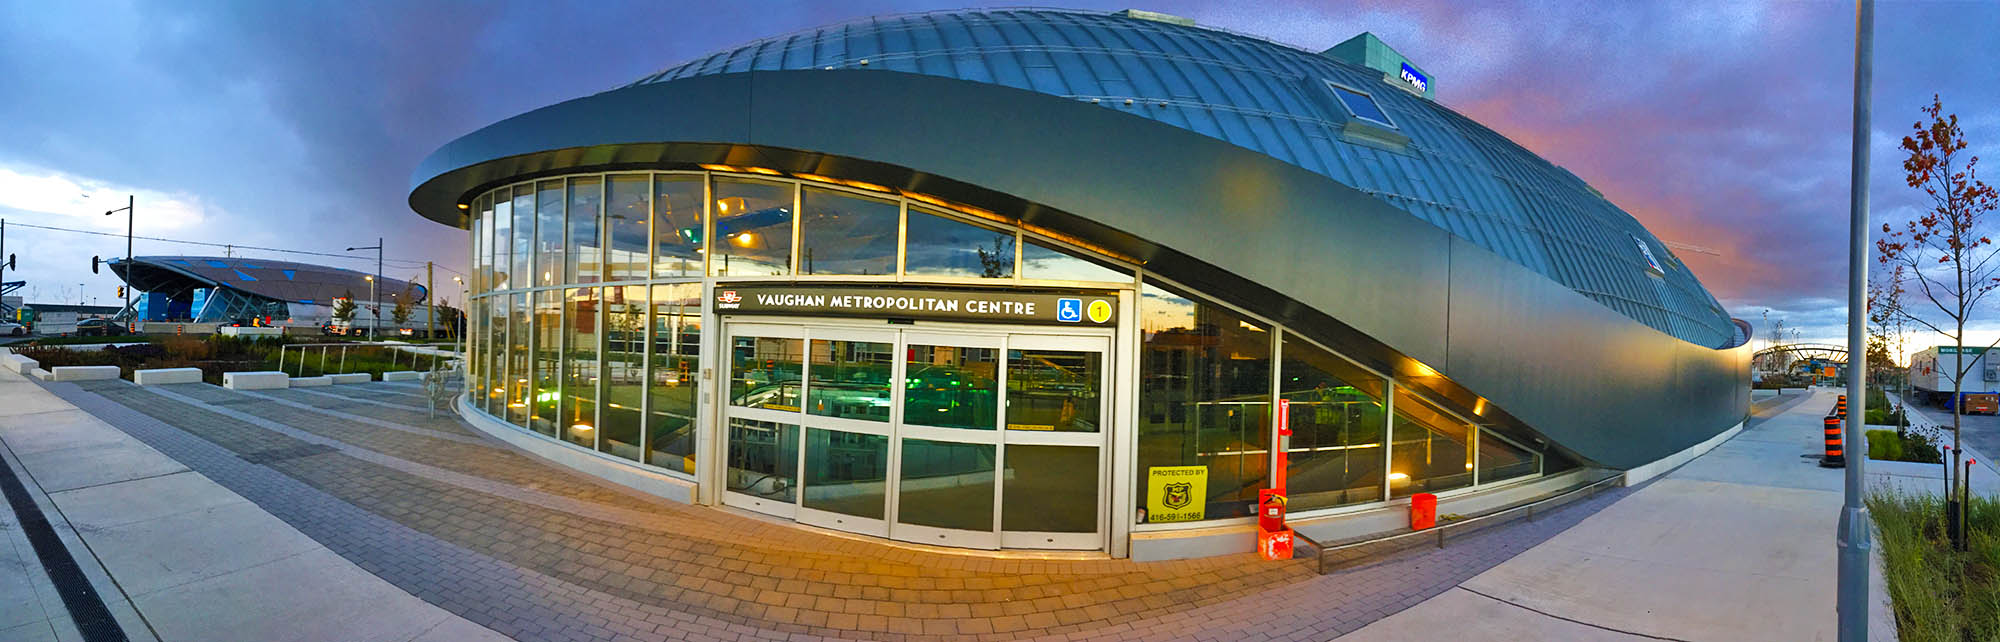 New VAUGHAN METROPOLITAN CENTRE TTC subway station, short 8 minute walk from the Training Center.